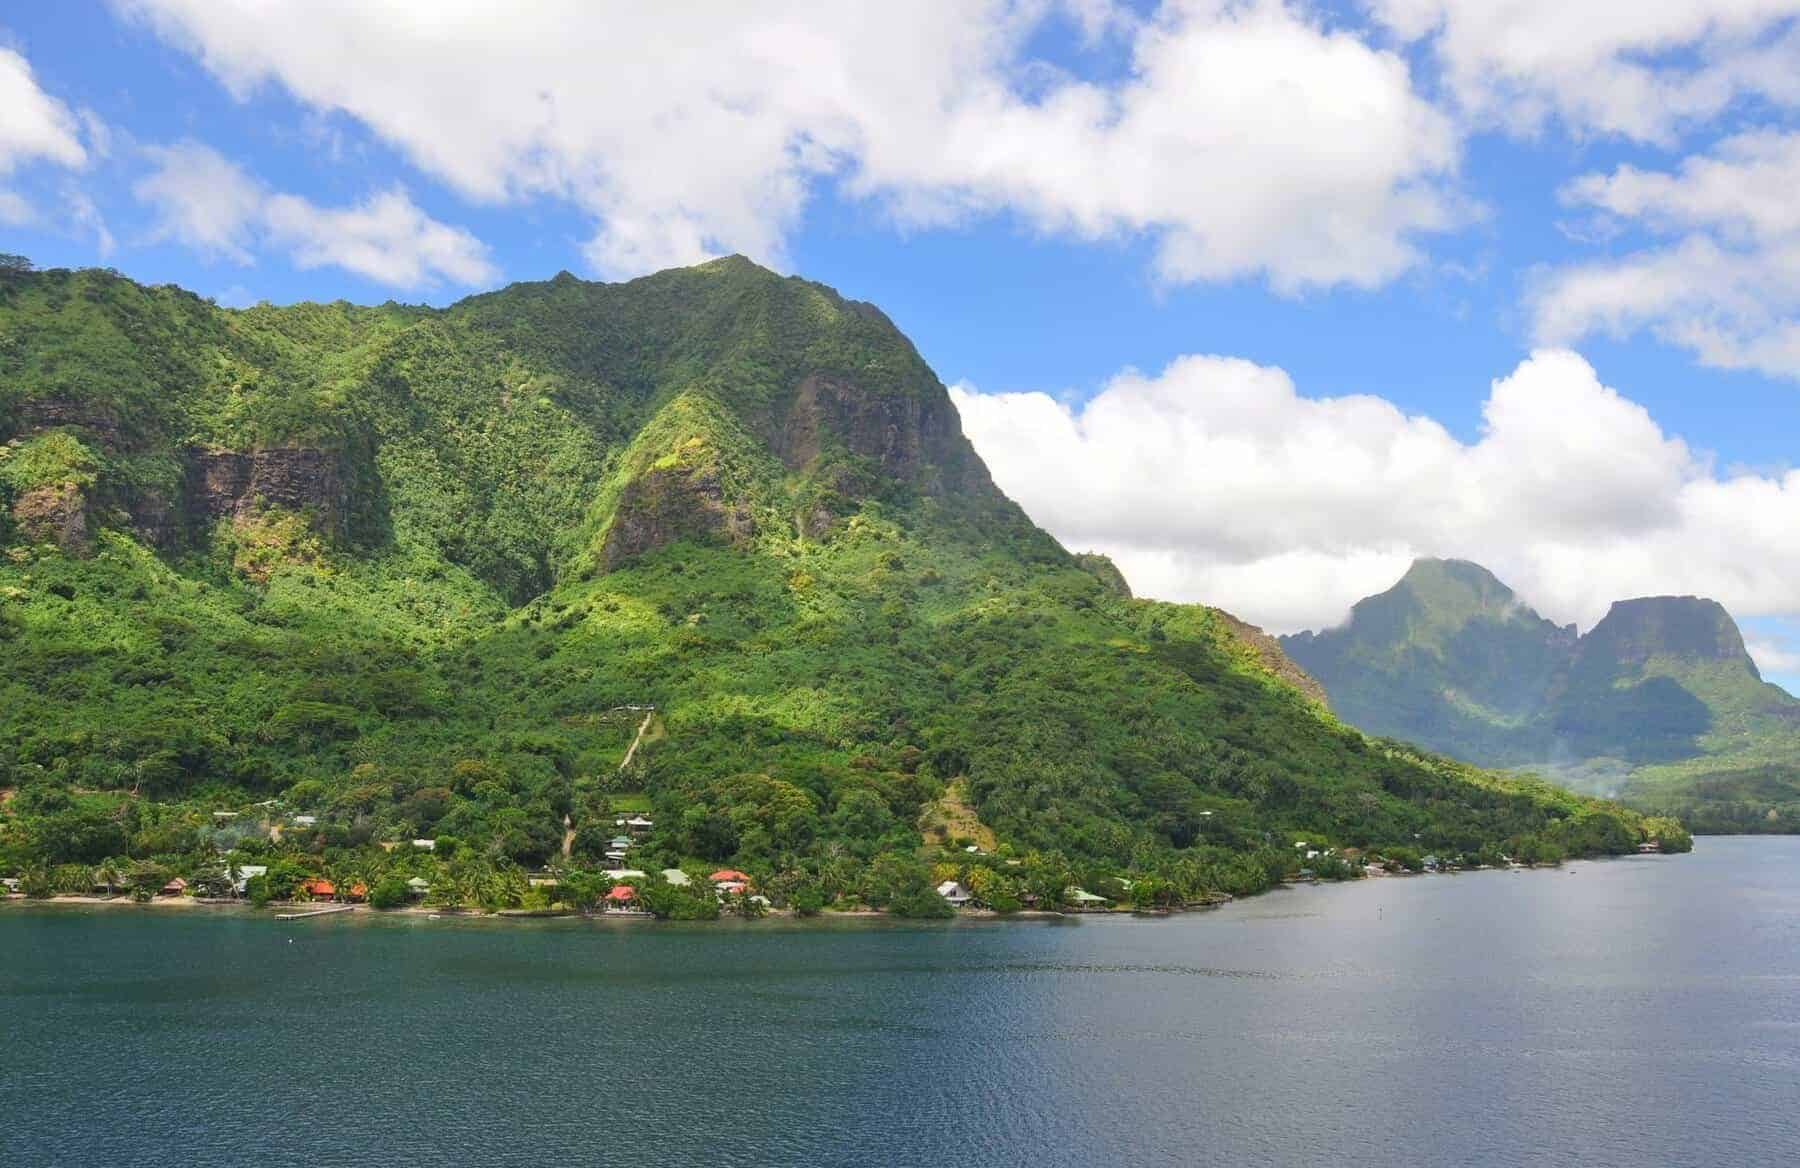 Tahiti islands landscape seing from cruise ship during sailing